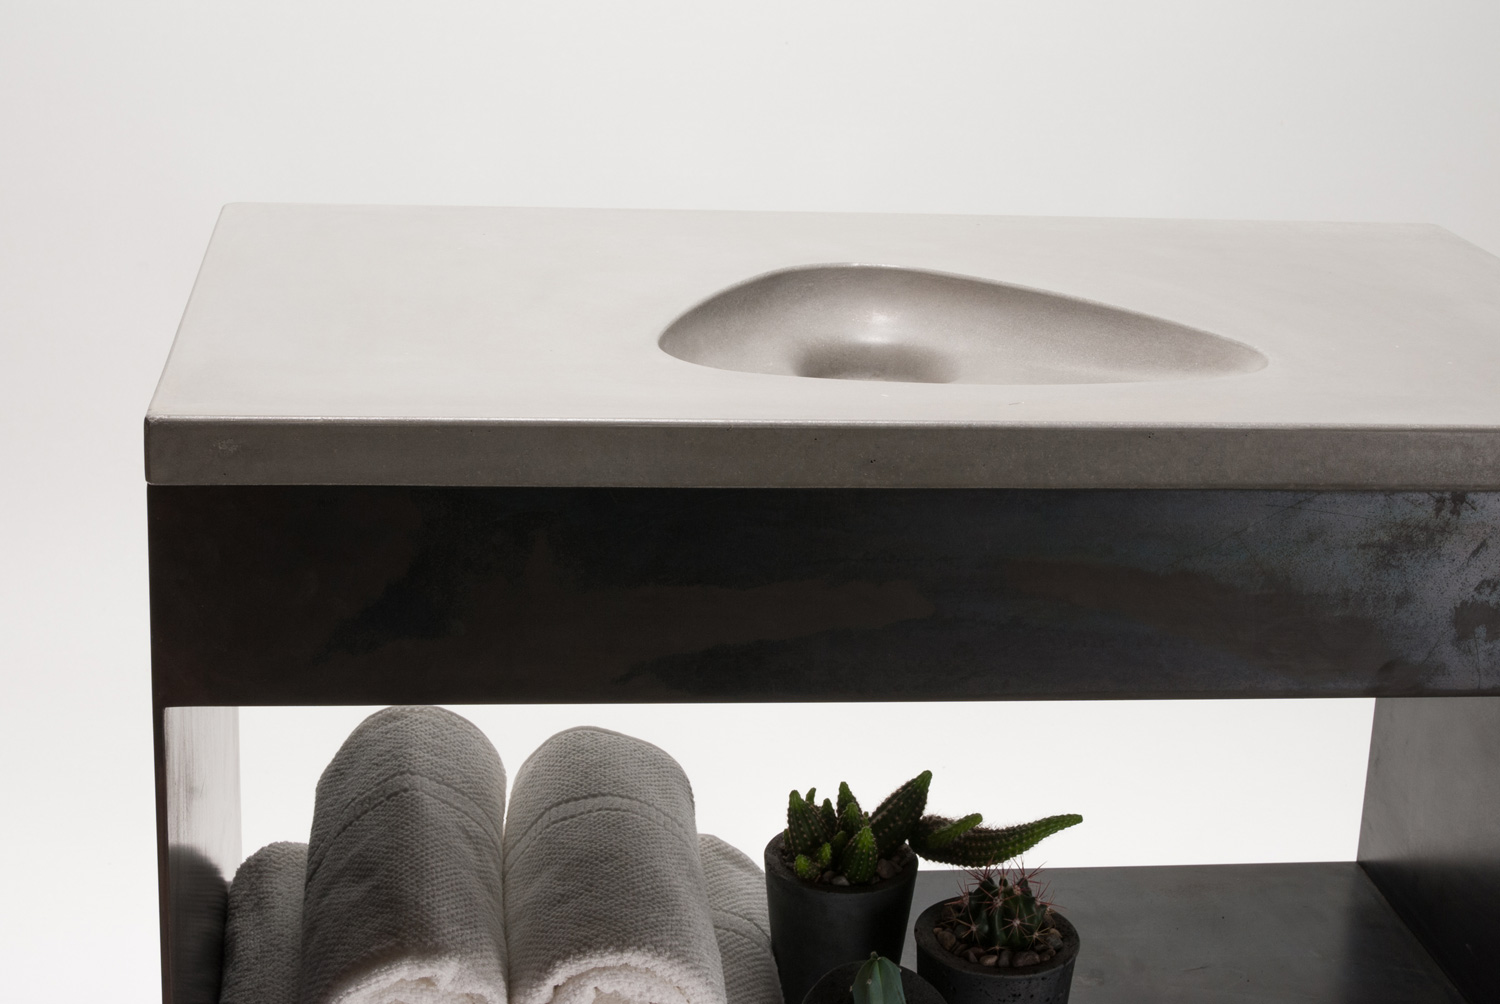 A simple, modern triangular concrete sink on a black steel sink base